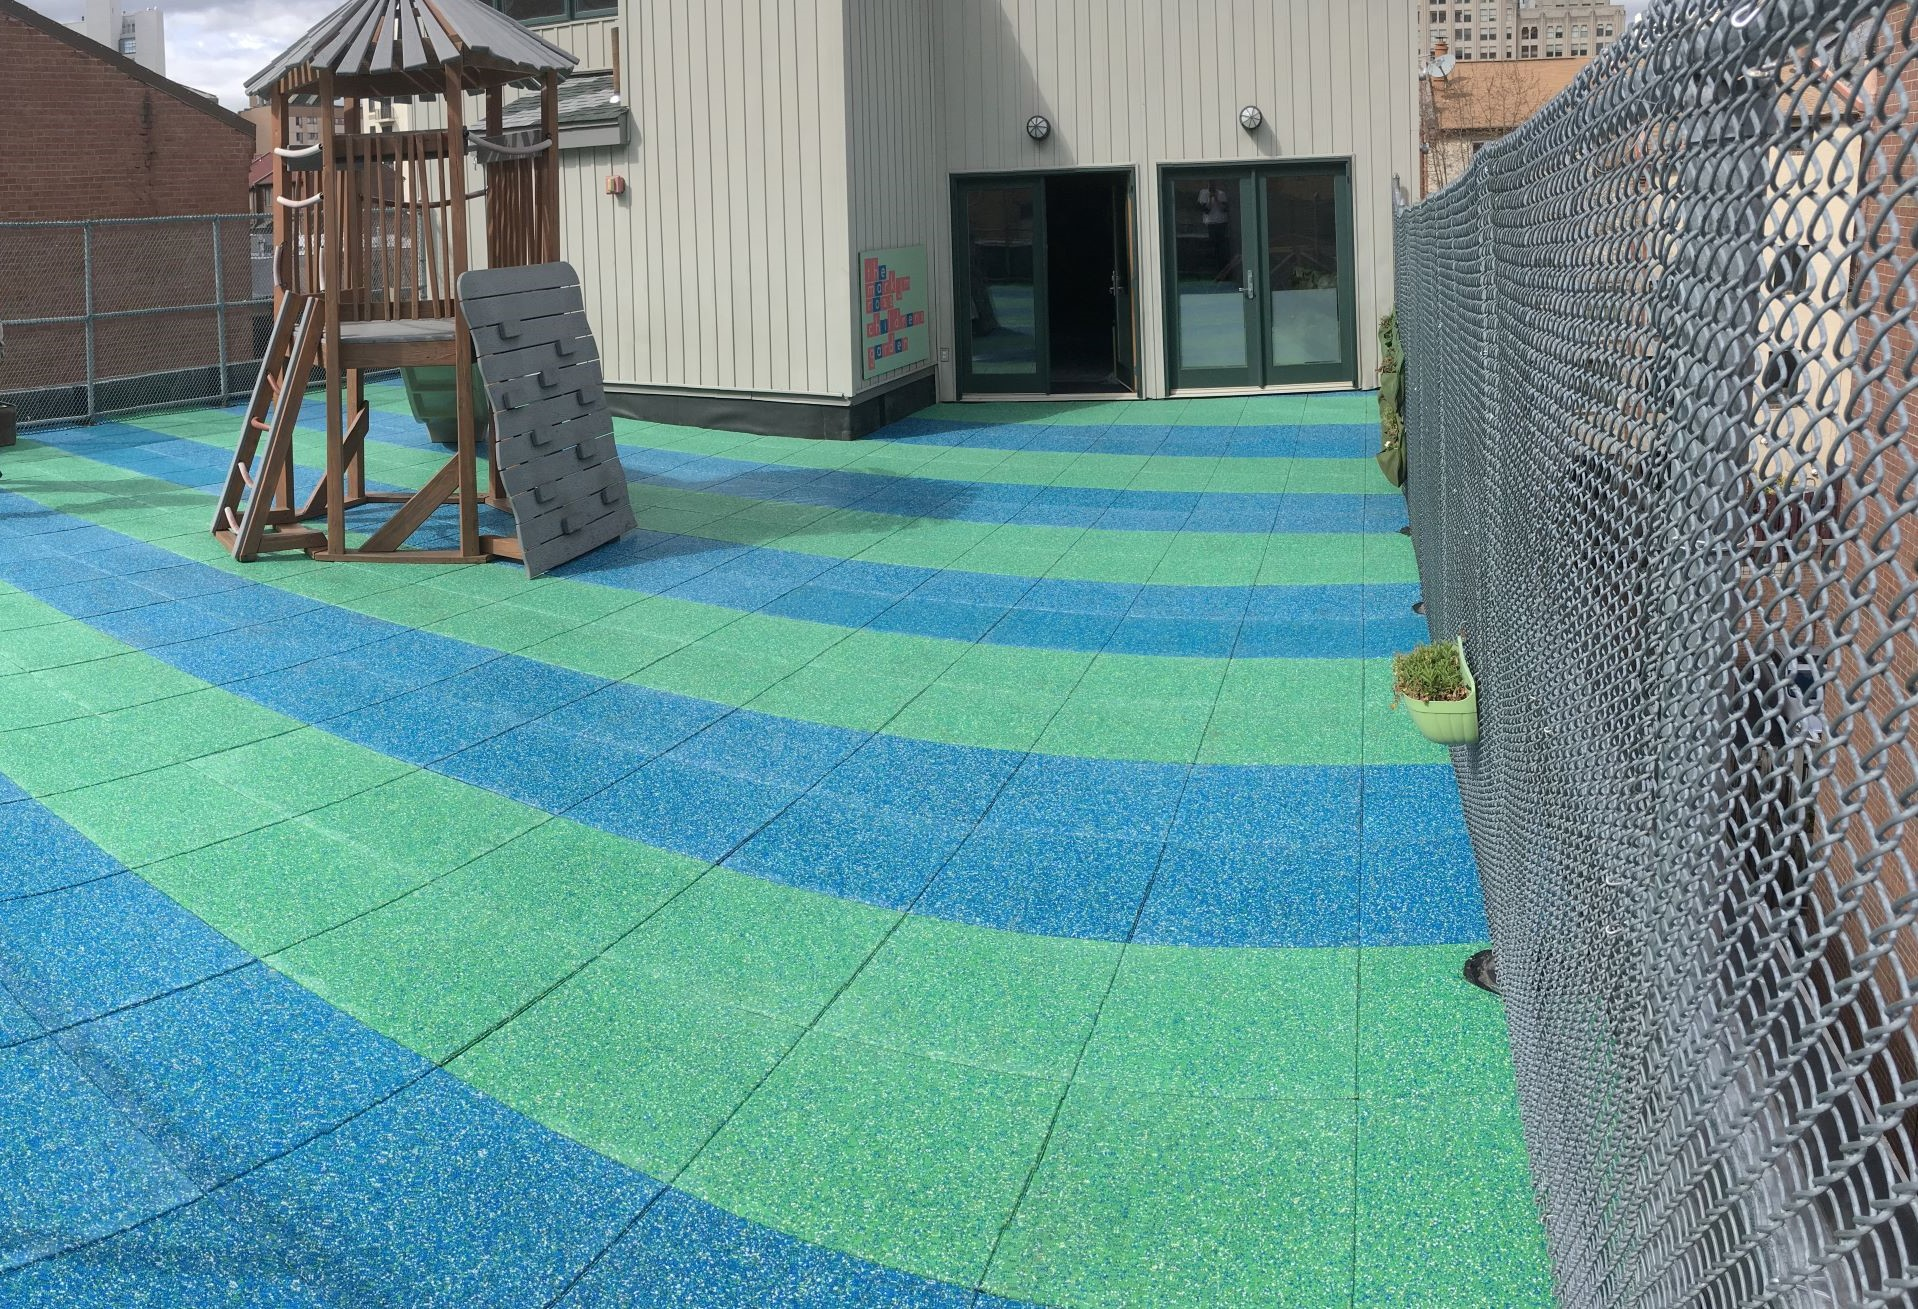 UNITY'S Rooftop Playground Pavers Using Solid TPV Top Color Chips